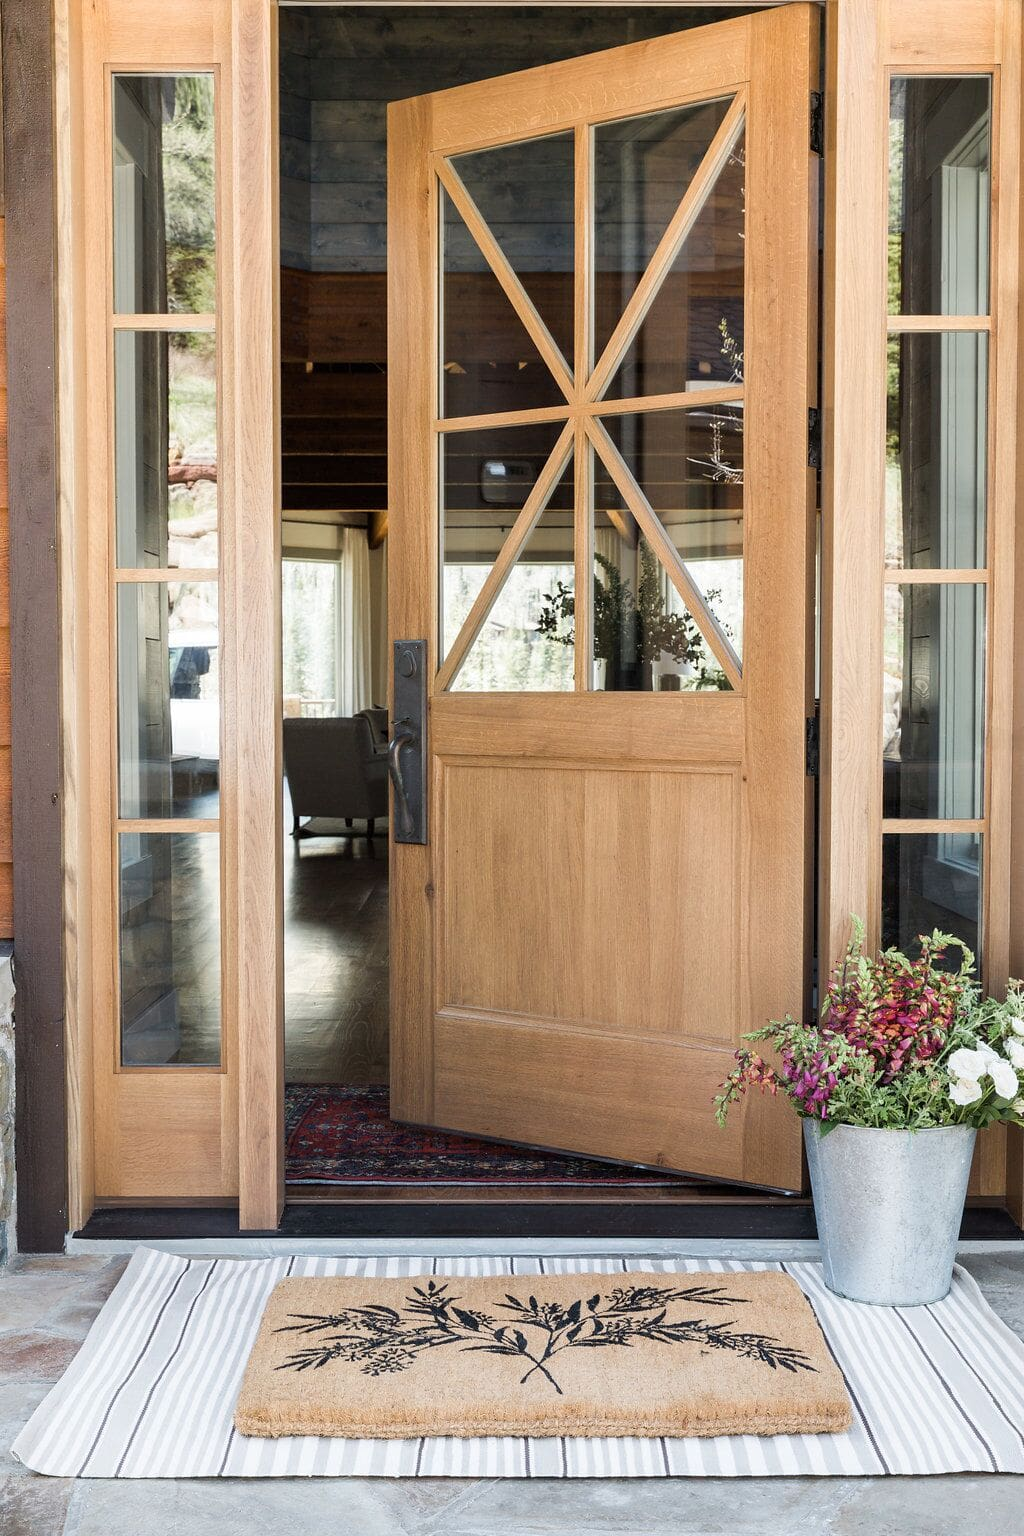 9 Farmhouse Front Door Designs You Ll Want For Your Own Home City Girl Gone Mom